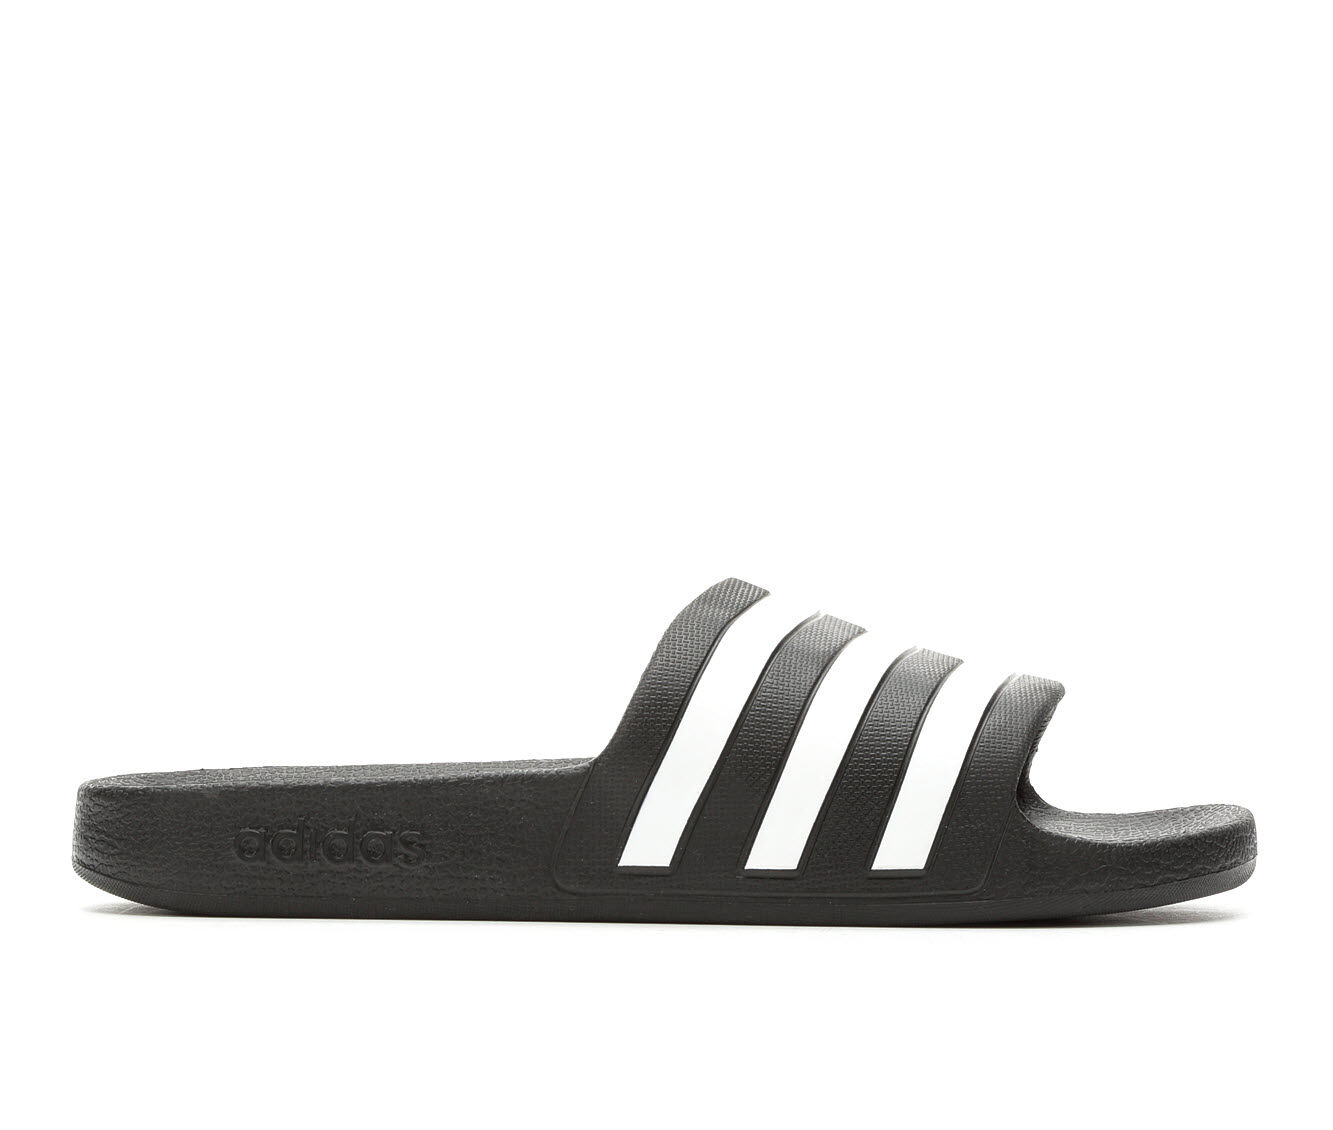 Trend Mark Women's Adidas Adilette Aqua Slides Black/White